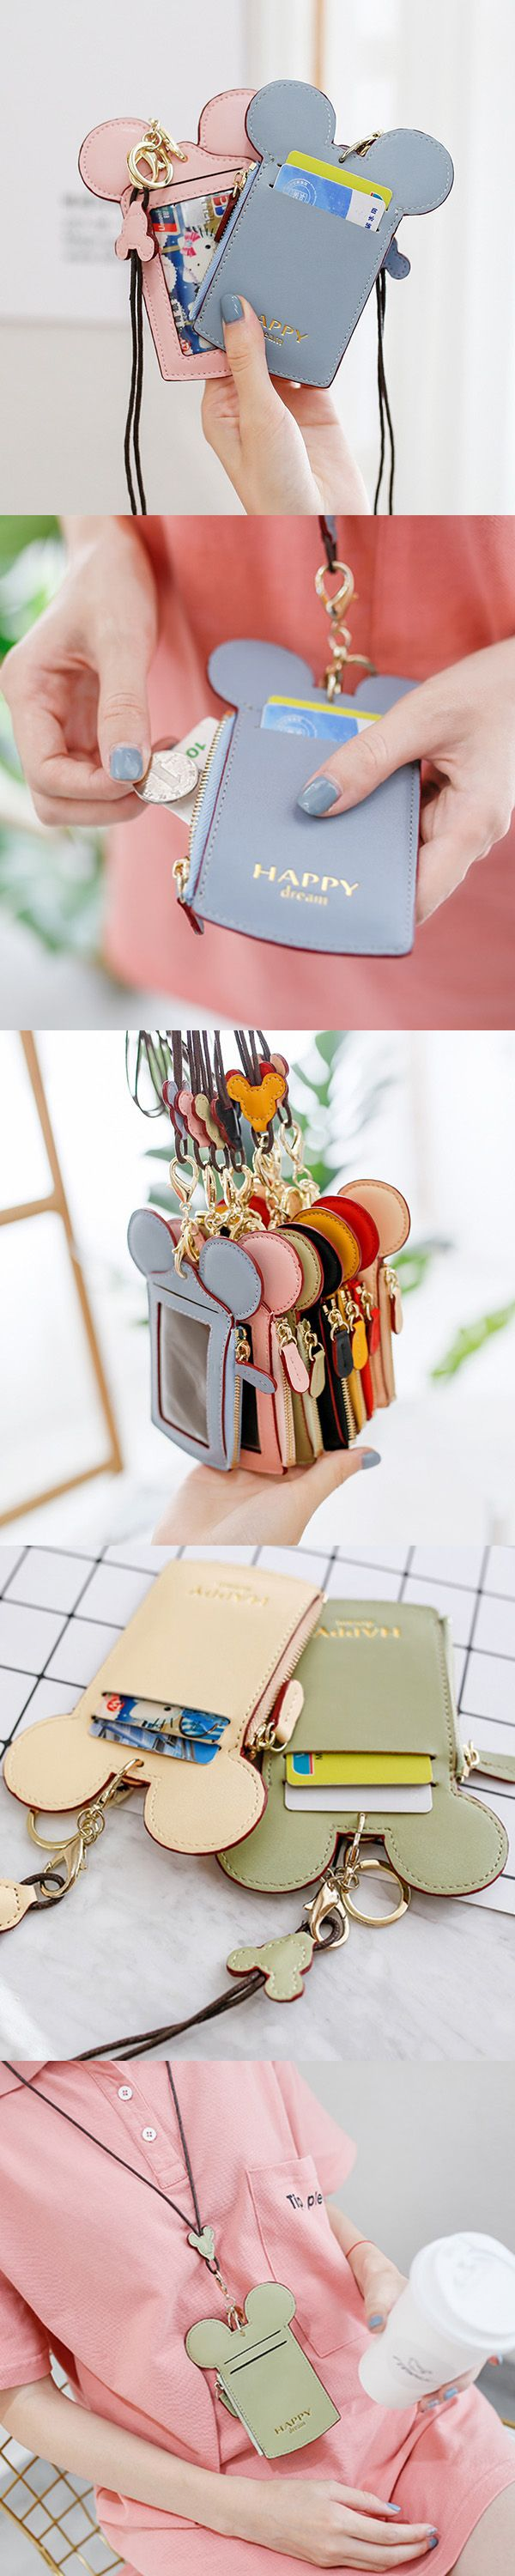 US$8.99   Women Cute Animal Shap Card Holder Wallet Purse Neck Bag